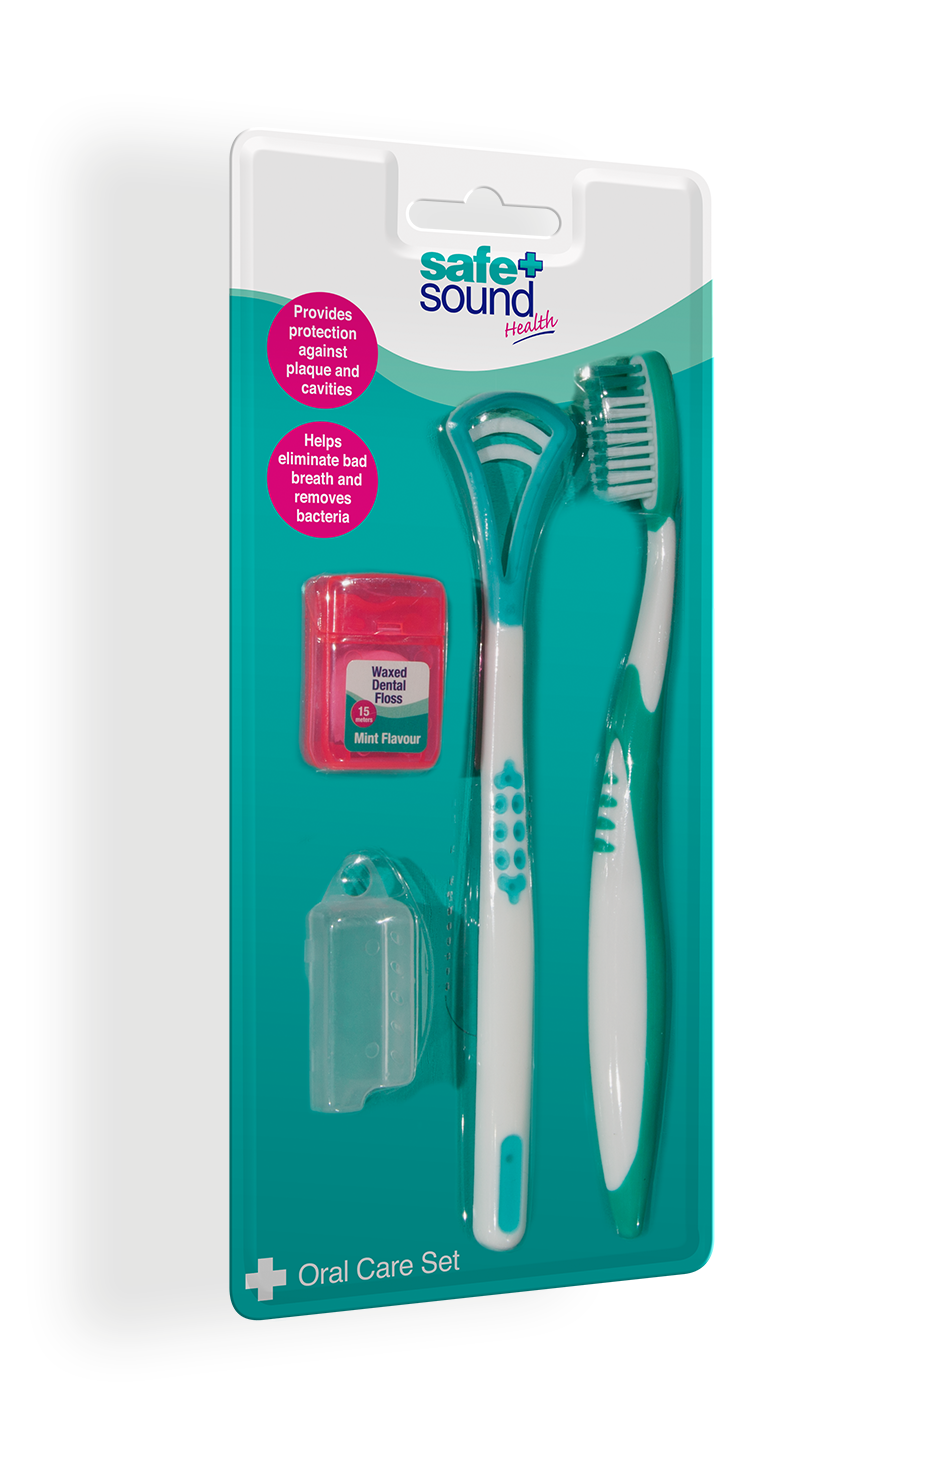 Safe and Sound Health Manual Toothbrush, Dental Floss and Tongue Cleaner Oral Care Set